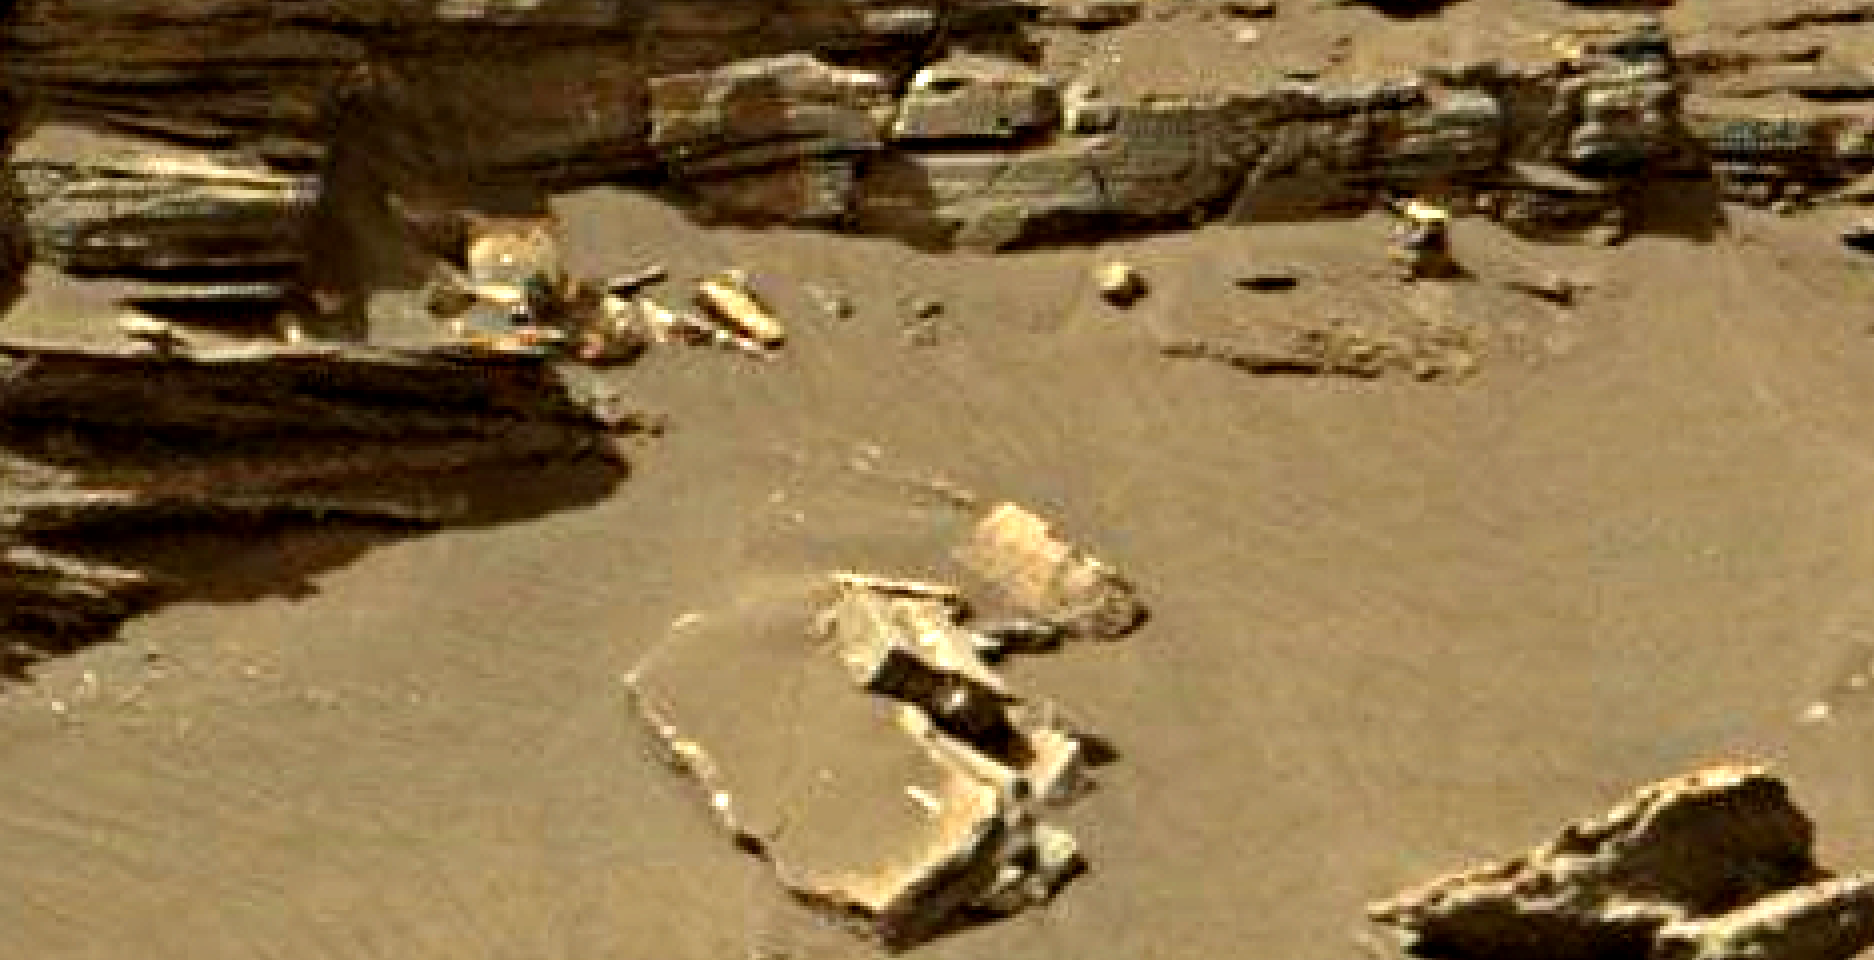 mars-sol-1454-anomaly-artifacts-4-was-life-on-mars